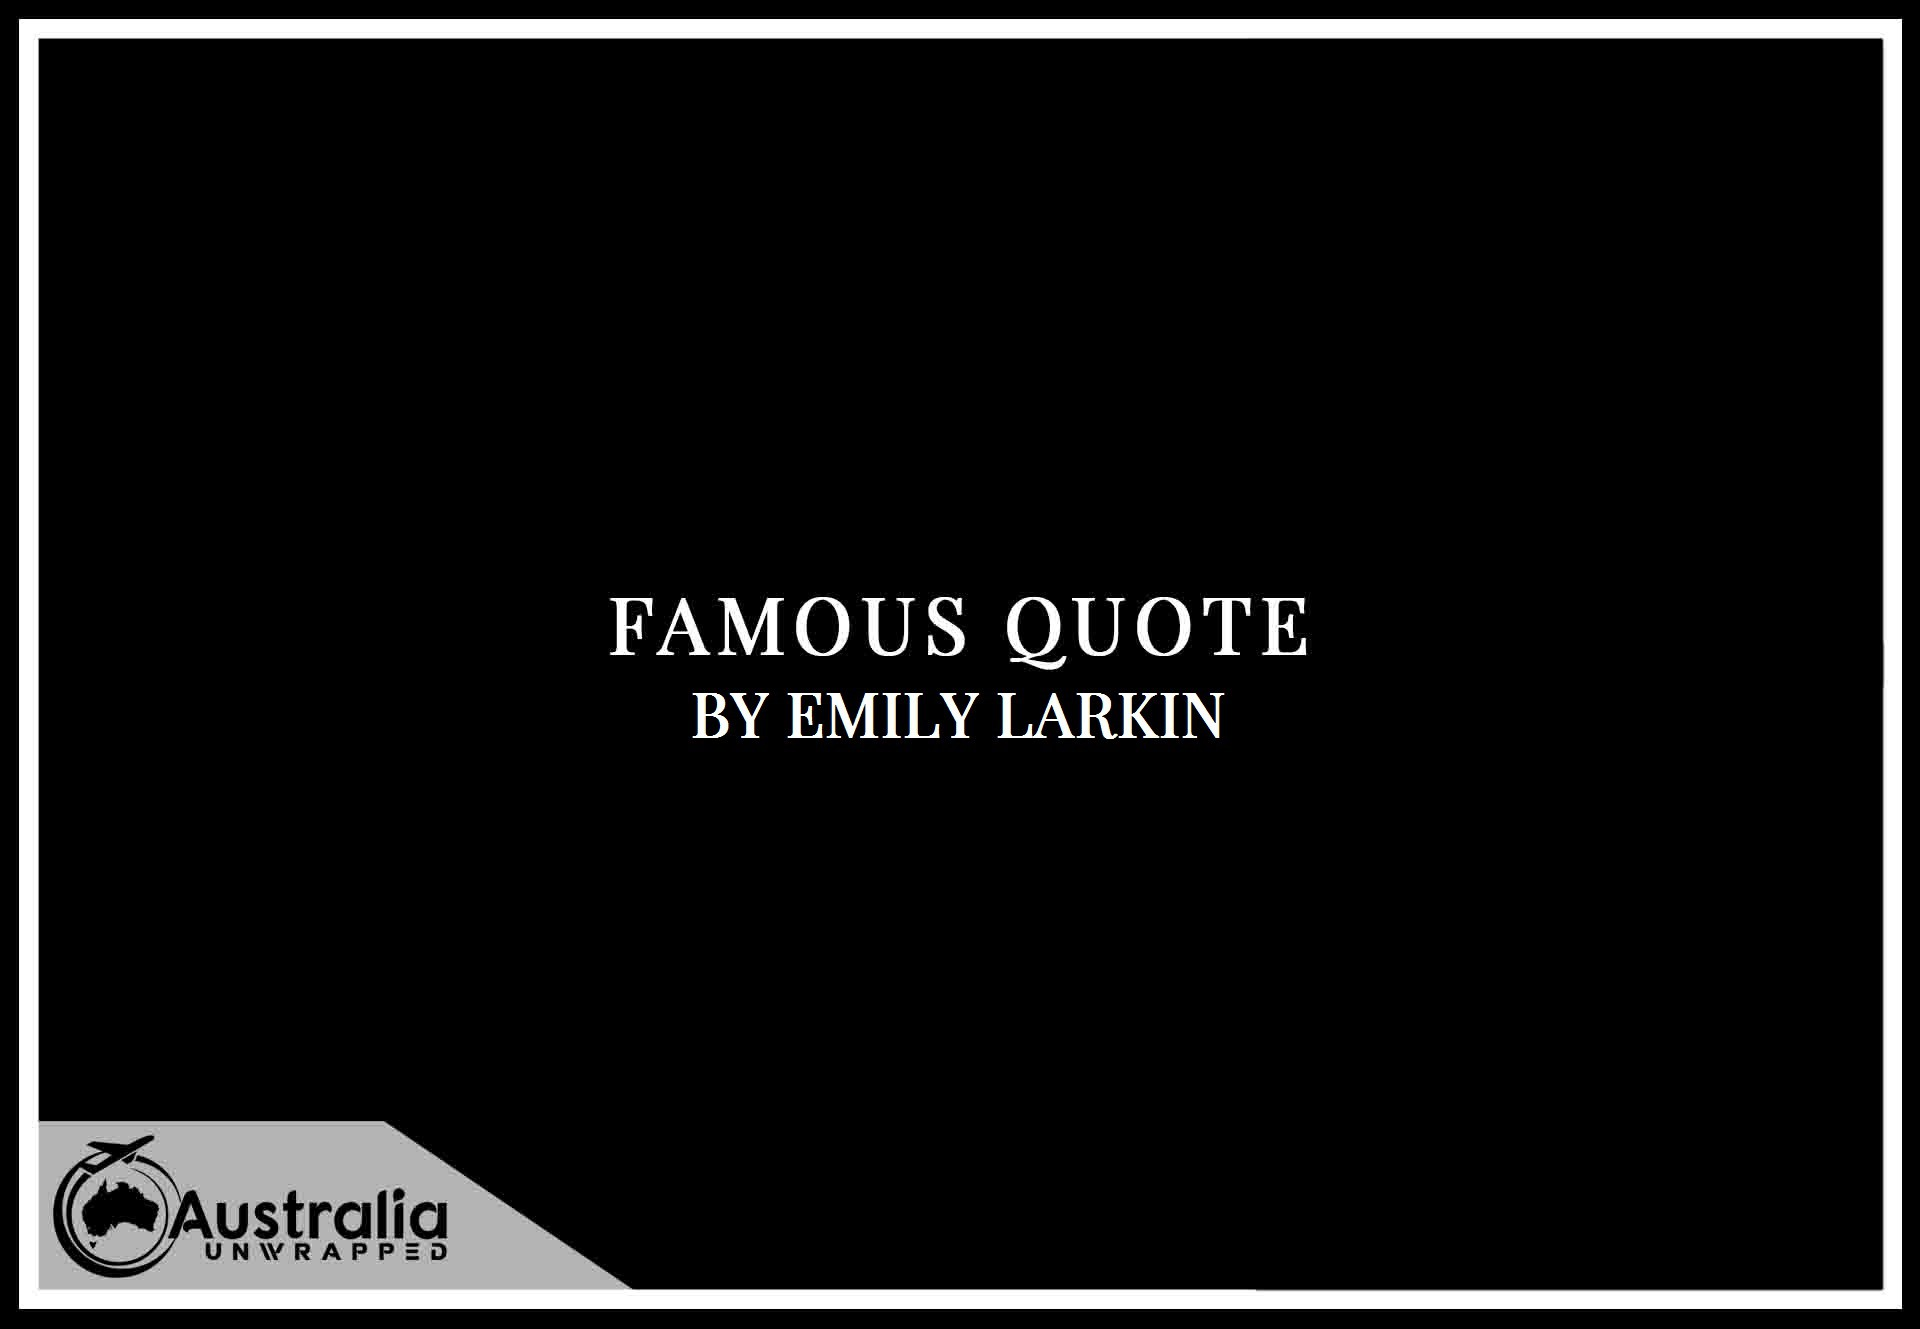 Emily Larkin's Top 1 Popular and Famous Quotes